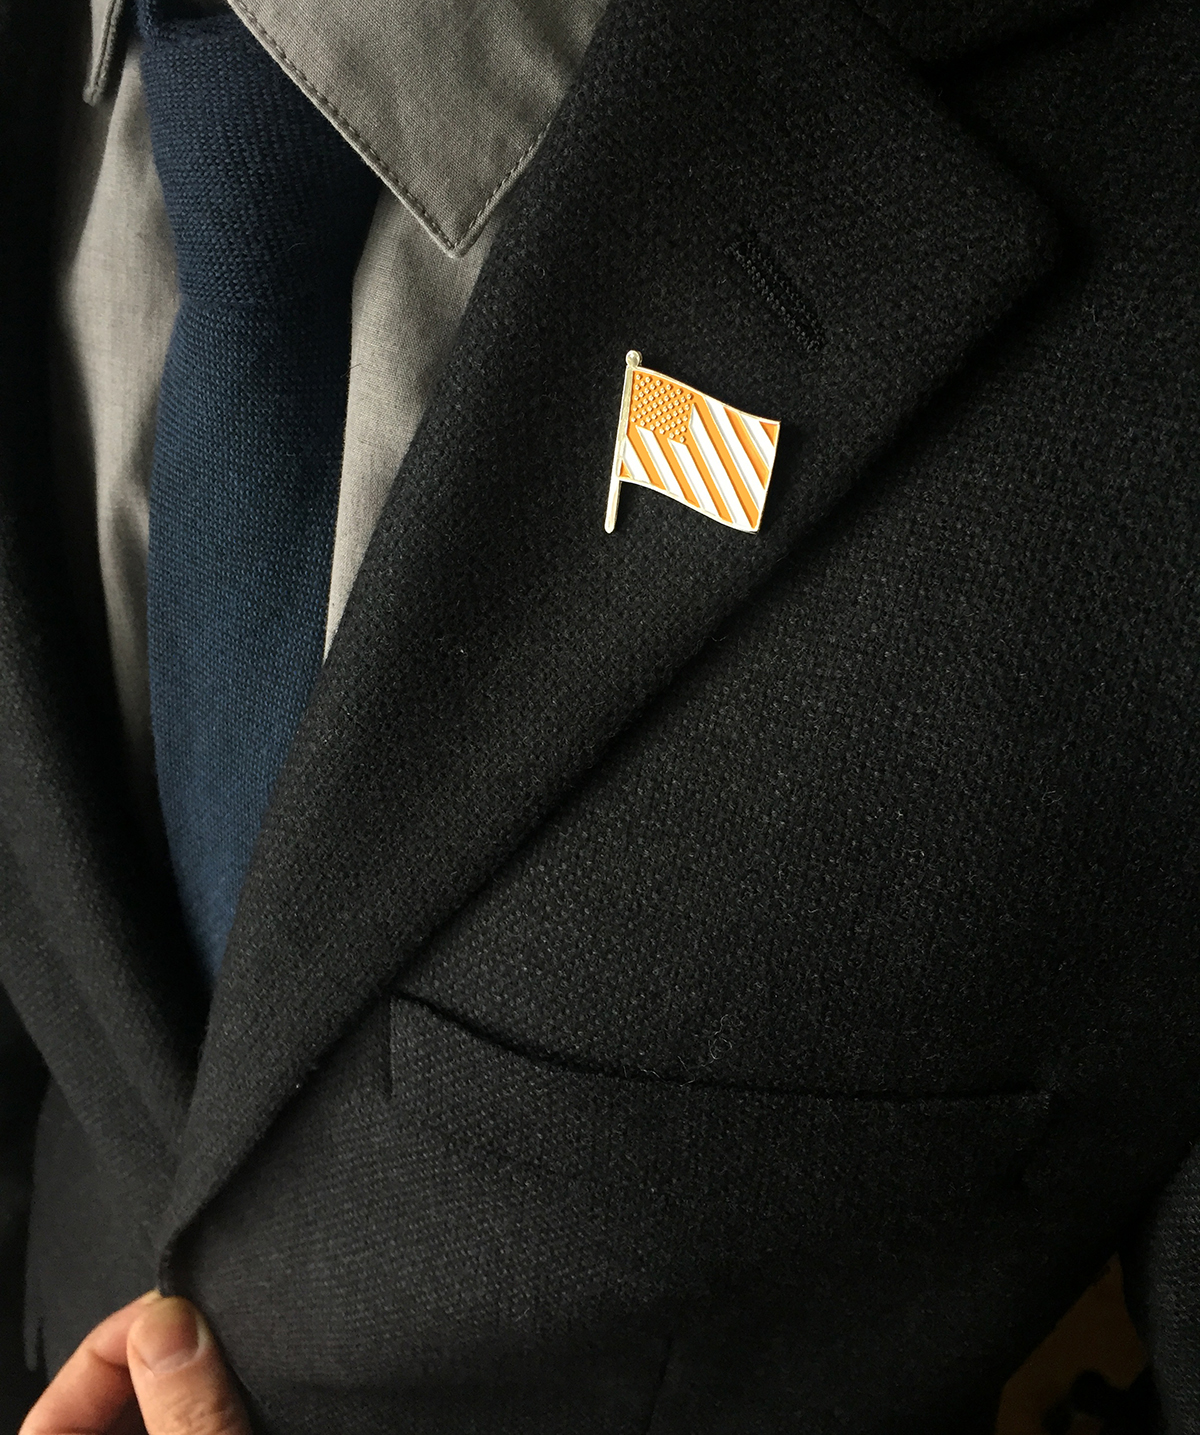 Caution Flag lapel pin. Sold out.